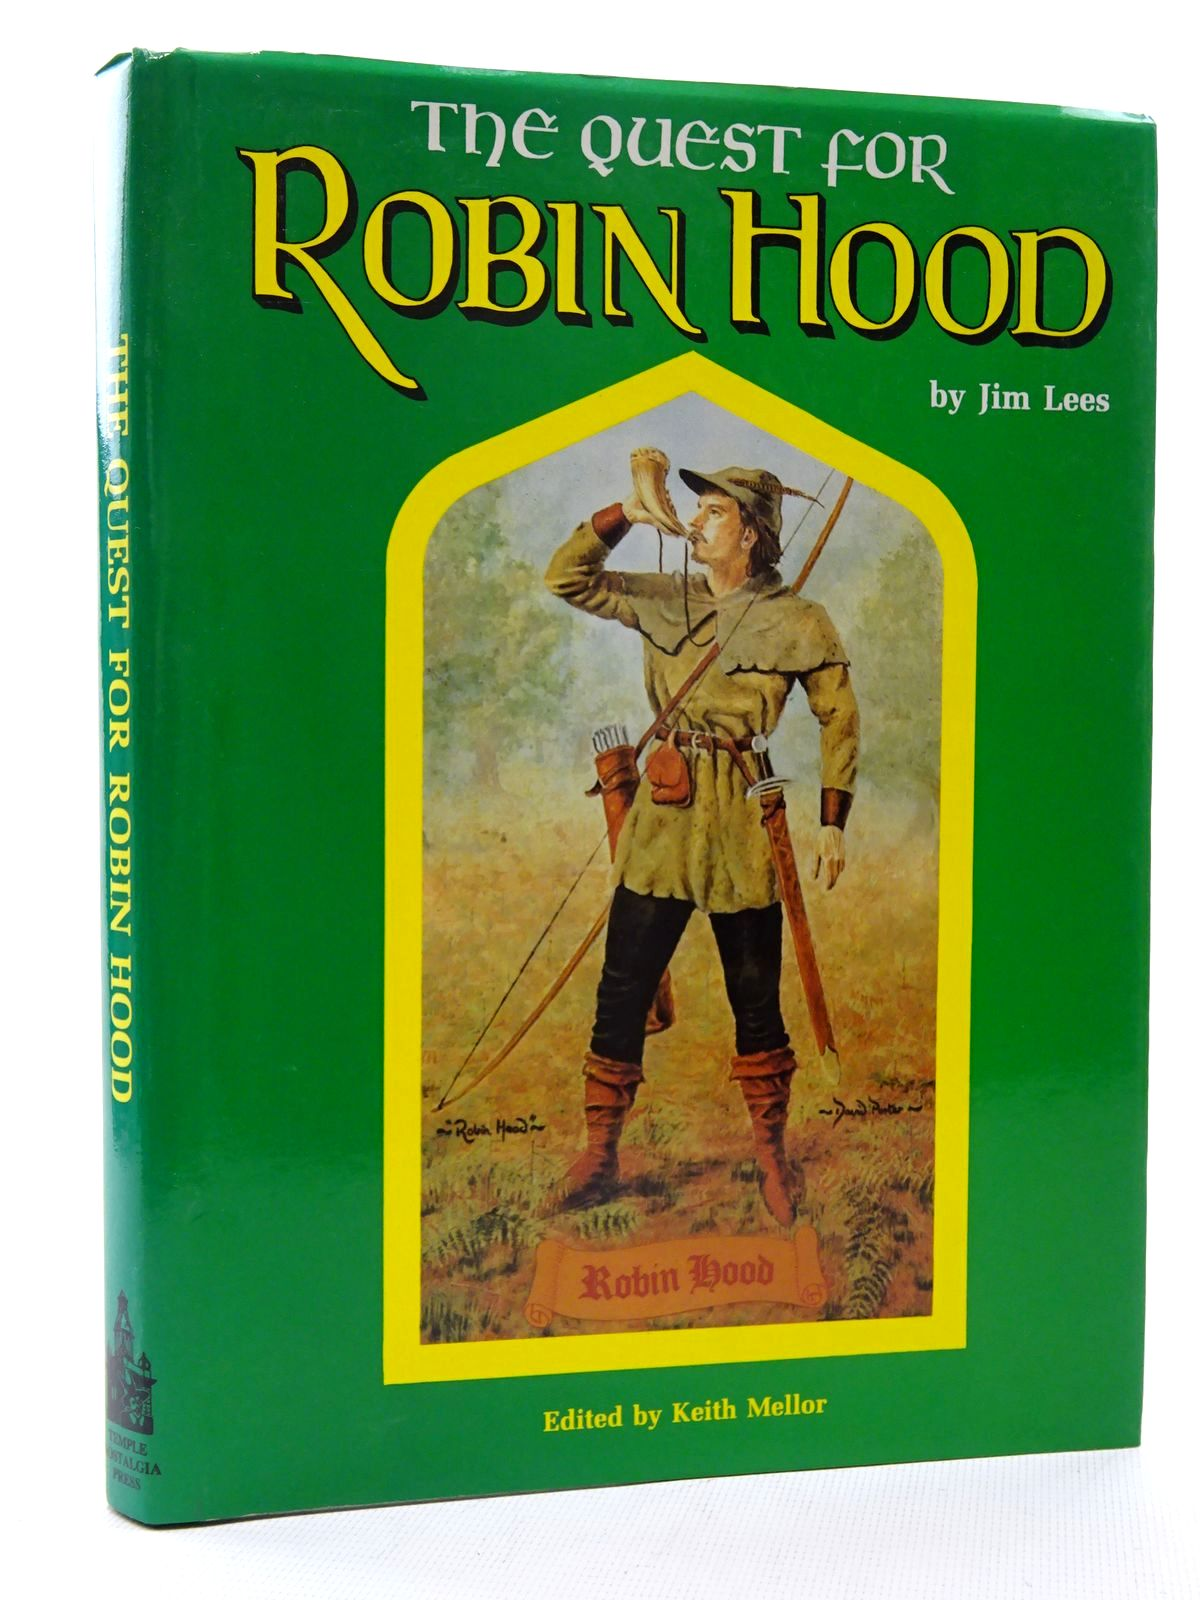 Photo of THE QUEST FOR ROBIN HOOD written by Lees, Jim Mellor, Keith published by Temple Nostalgia (STOCK CODE: 2125077)  for sale by Stella & Rose's Books